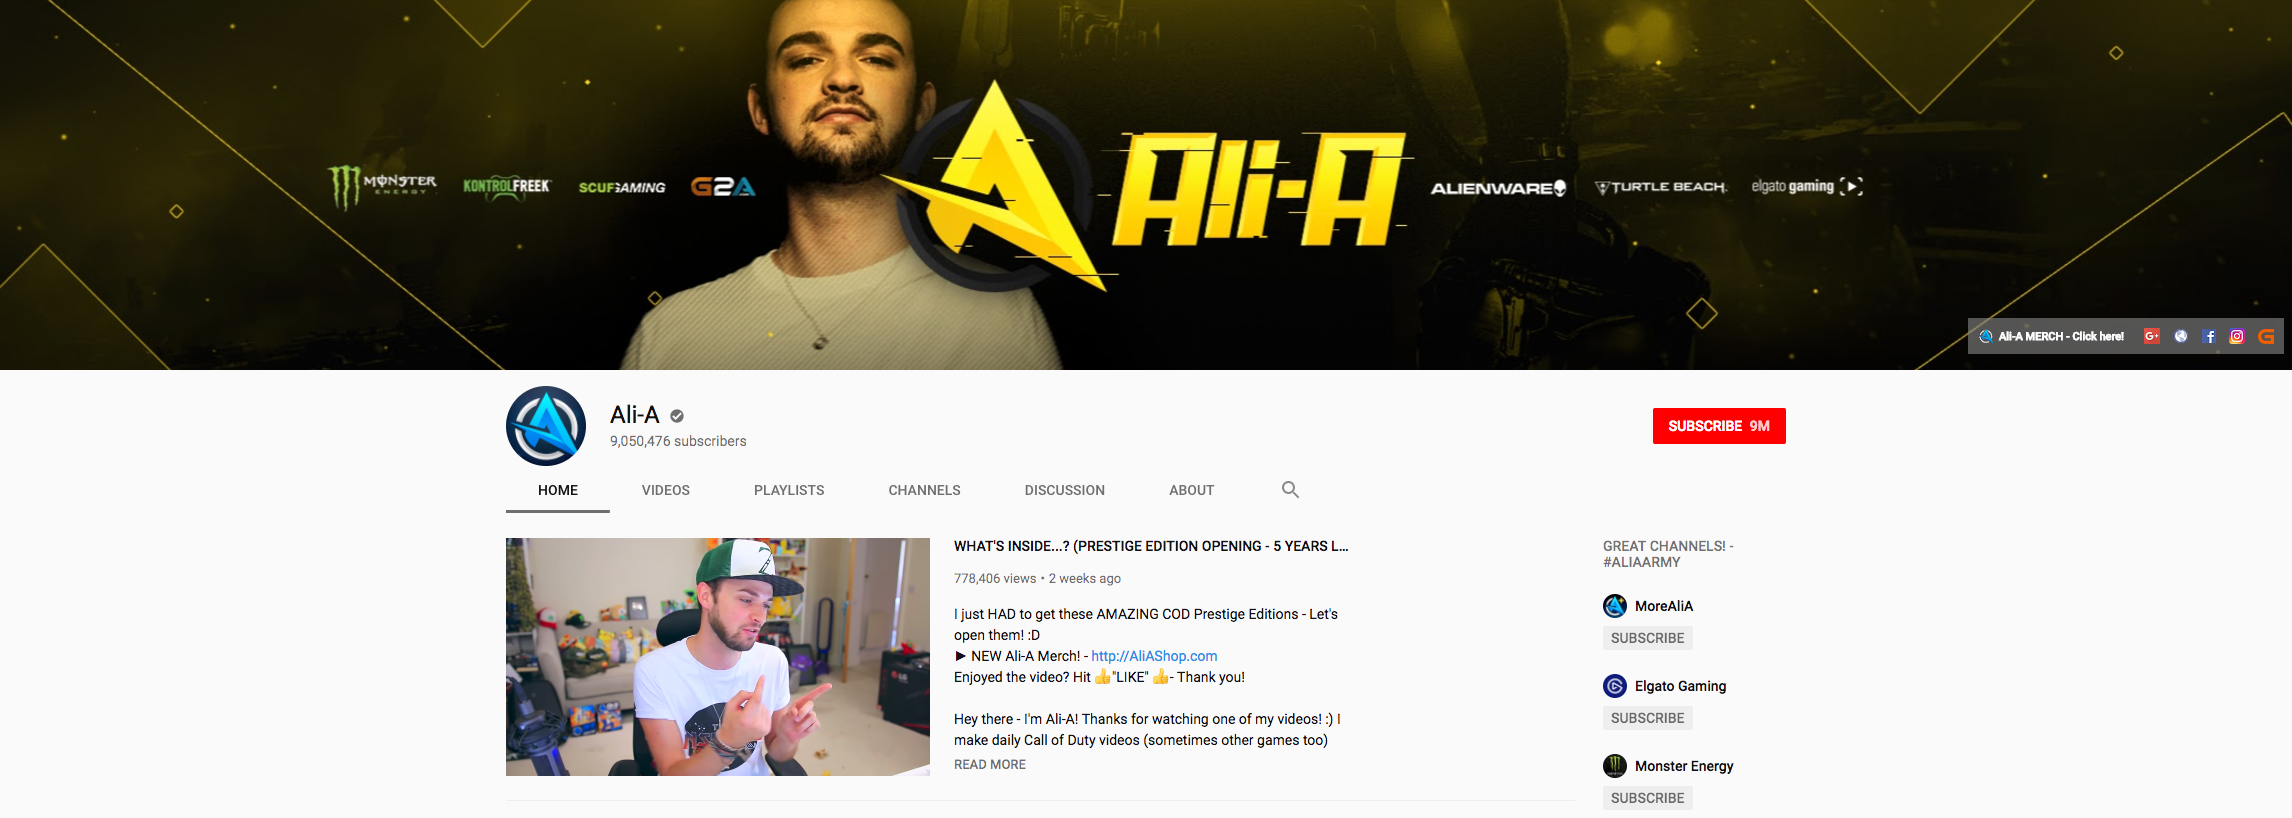 Ali-A Top Gaming Influencers